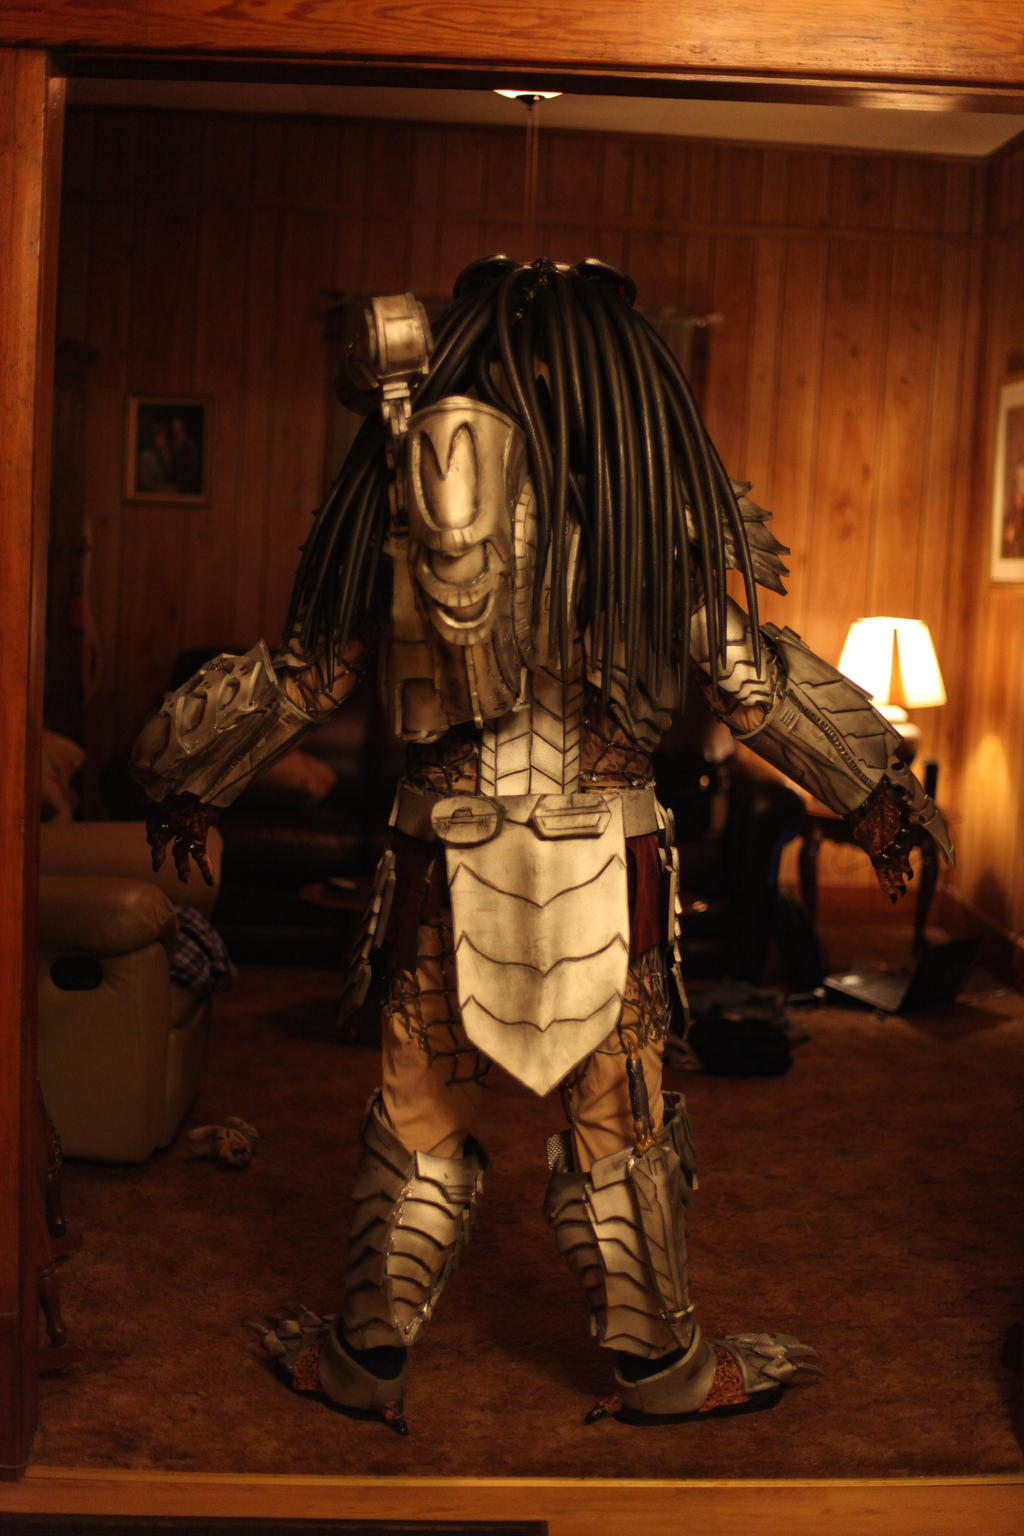 celtic predator costume back by joshsmithstudio celtic predator costume back by joshsmithstudio & celtic predator costume back by joshsmithstudio on DeviantArt